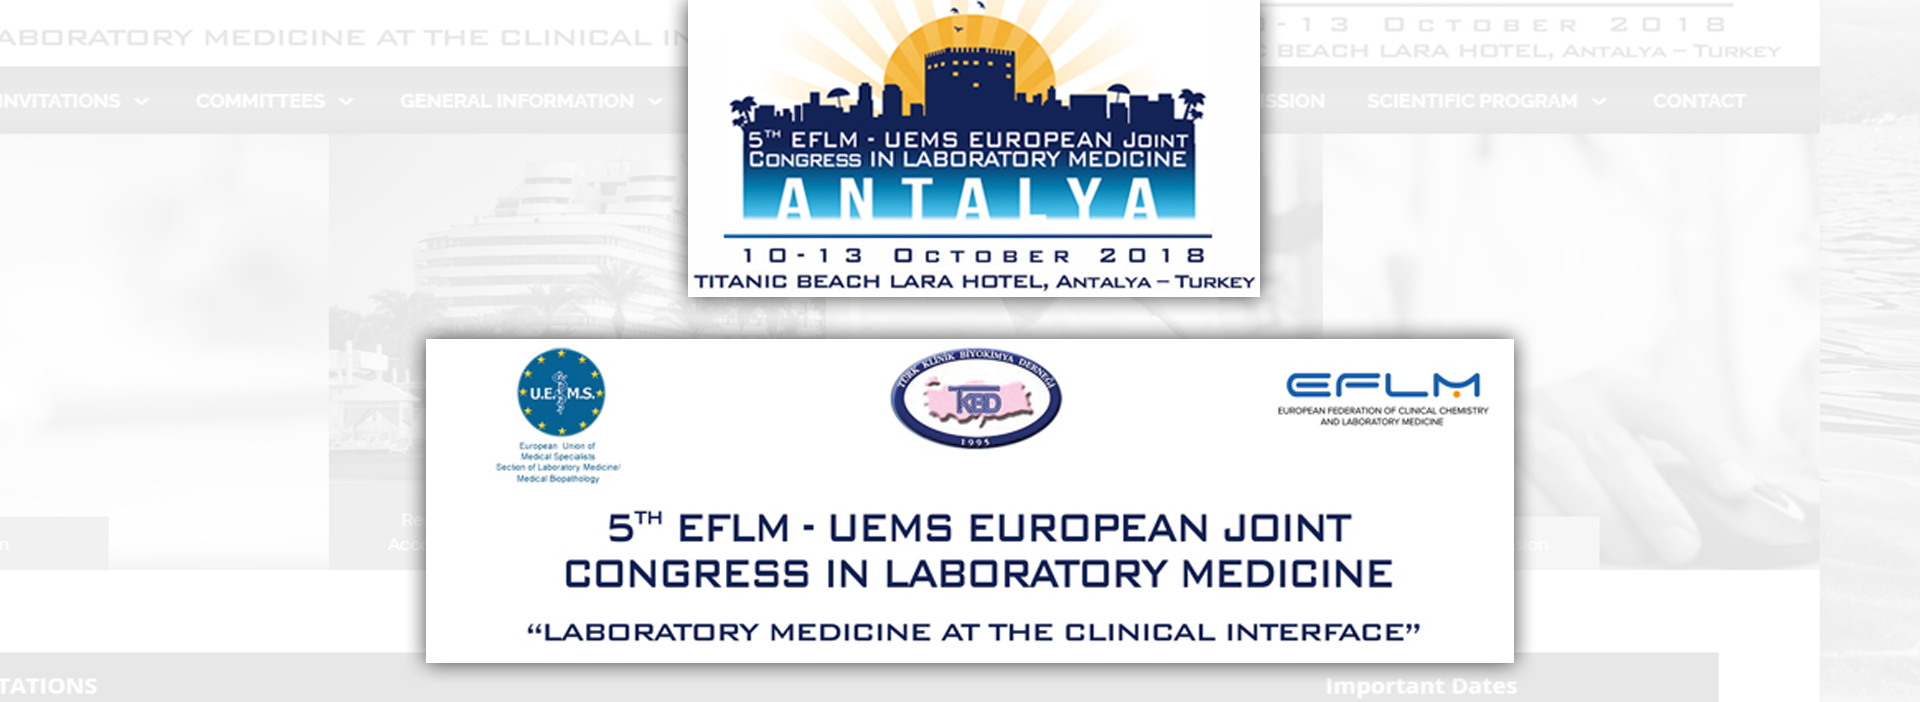 5th EFLM-UEMS EUROPEAN JOINT CONGRESS IN LABORATORY MEDICINE